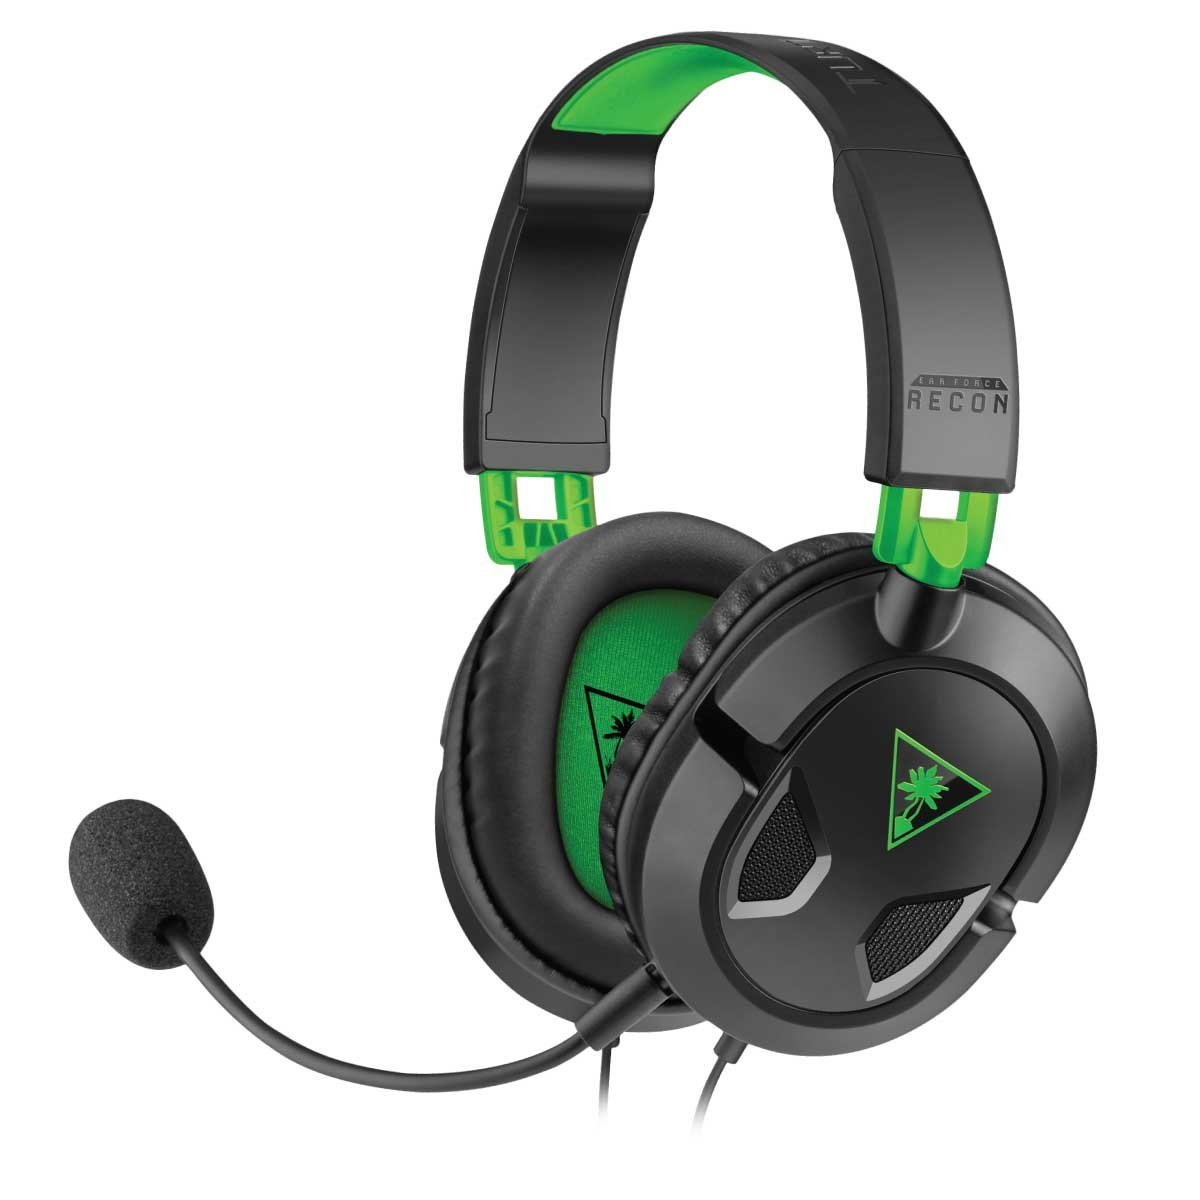 Turtle Beach - Ear Force Recon 50X Stereo Gaming Headset - Xbox One (compatible w/ Xbox One controller w/ 3.5mm headset jack) and PS4